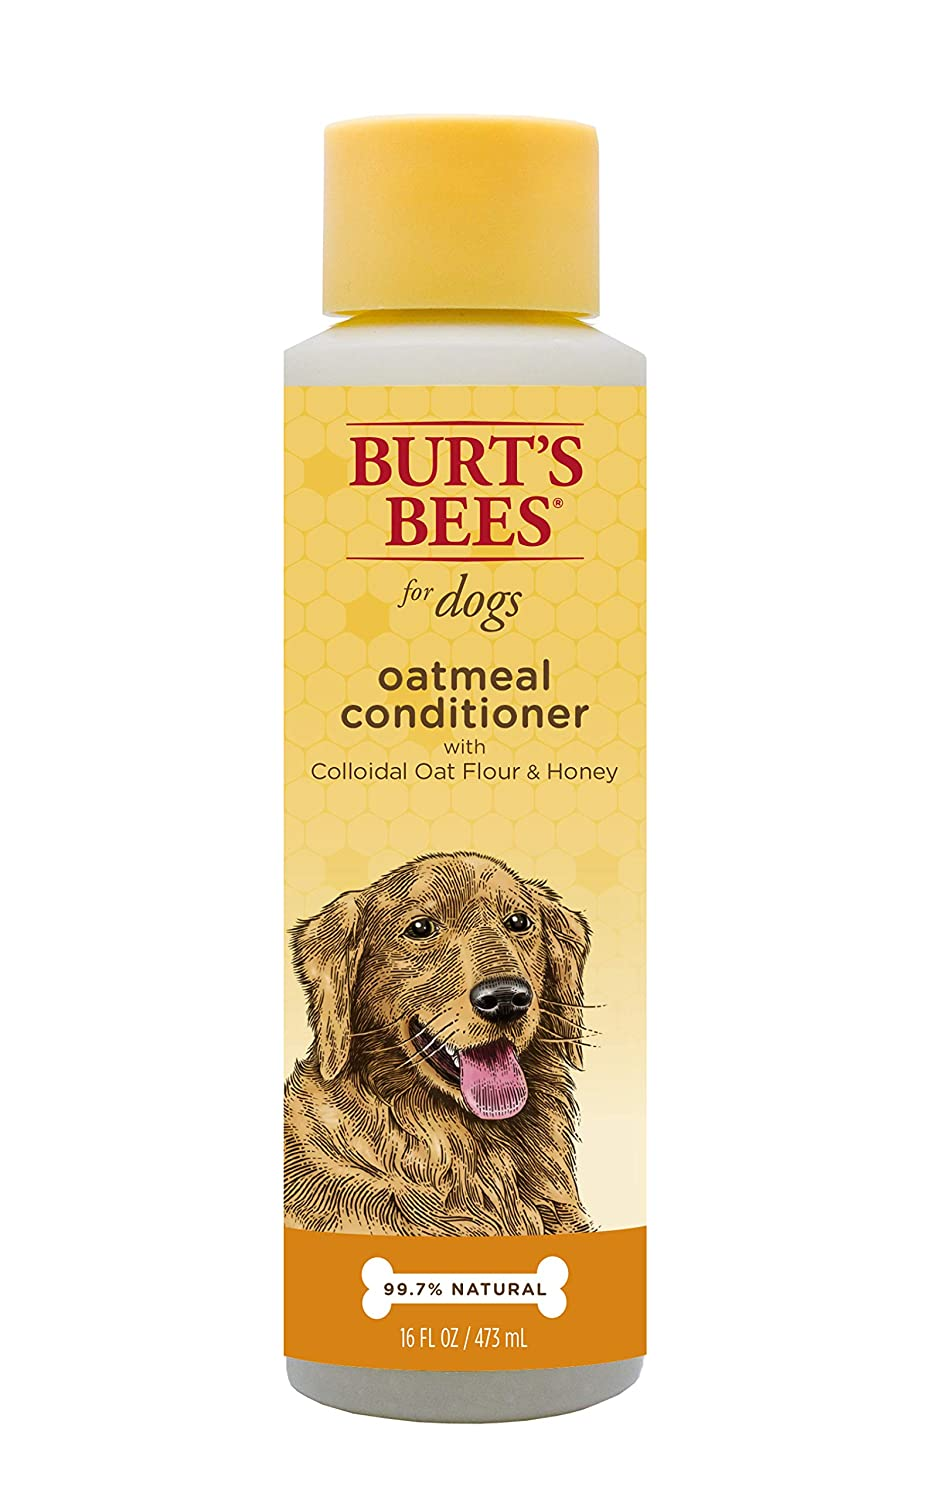 Burt's Bees for Dogs All-Natural Shampoos and Conditioners | Best Dog Shampoo For All Dogs and Puppies | pH Balanced for Dogs, No Sulfates, No Colorants, No Parabens